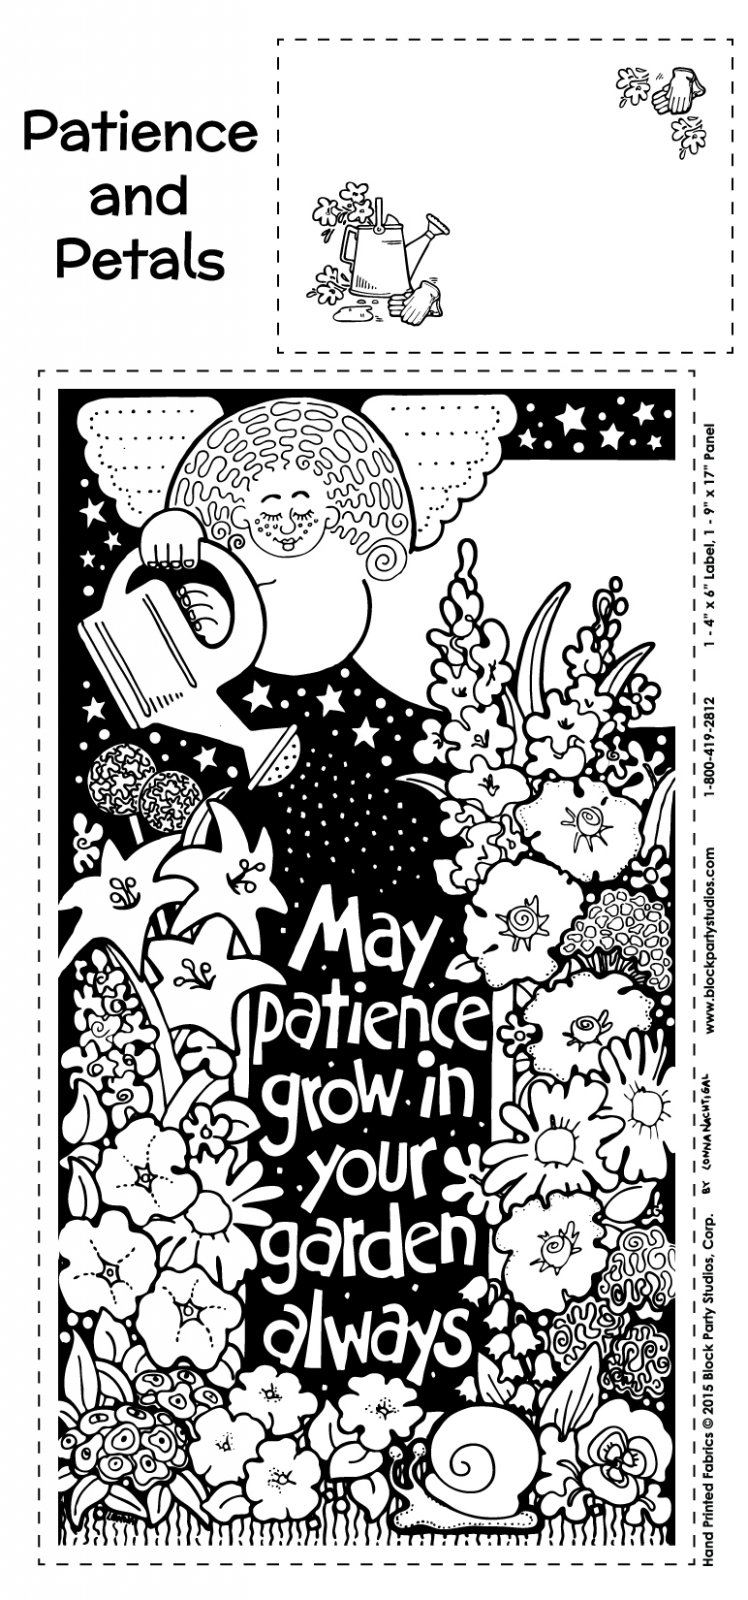 Patience and Petals Panel